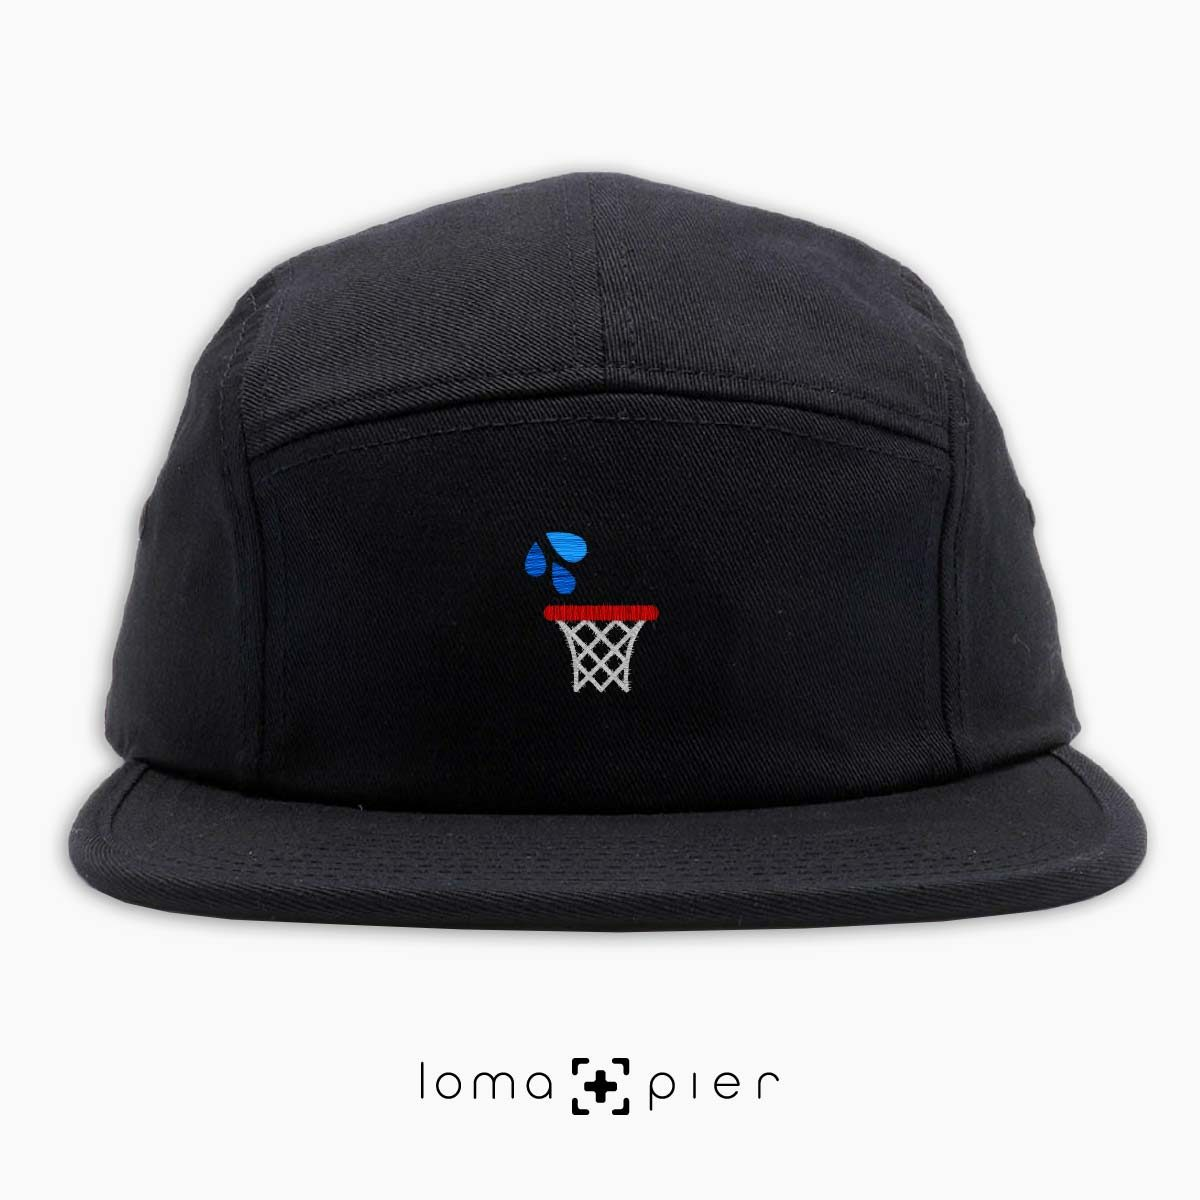 WET JUMPER basketball hoop icon embroidered on a black cotton 5-panel hat by loma+pier hat store